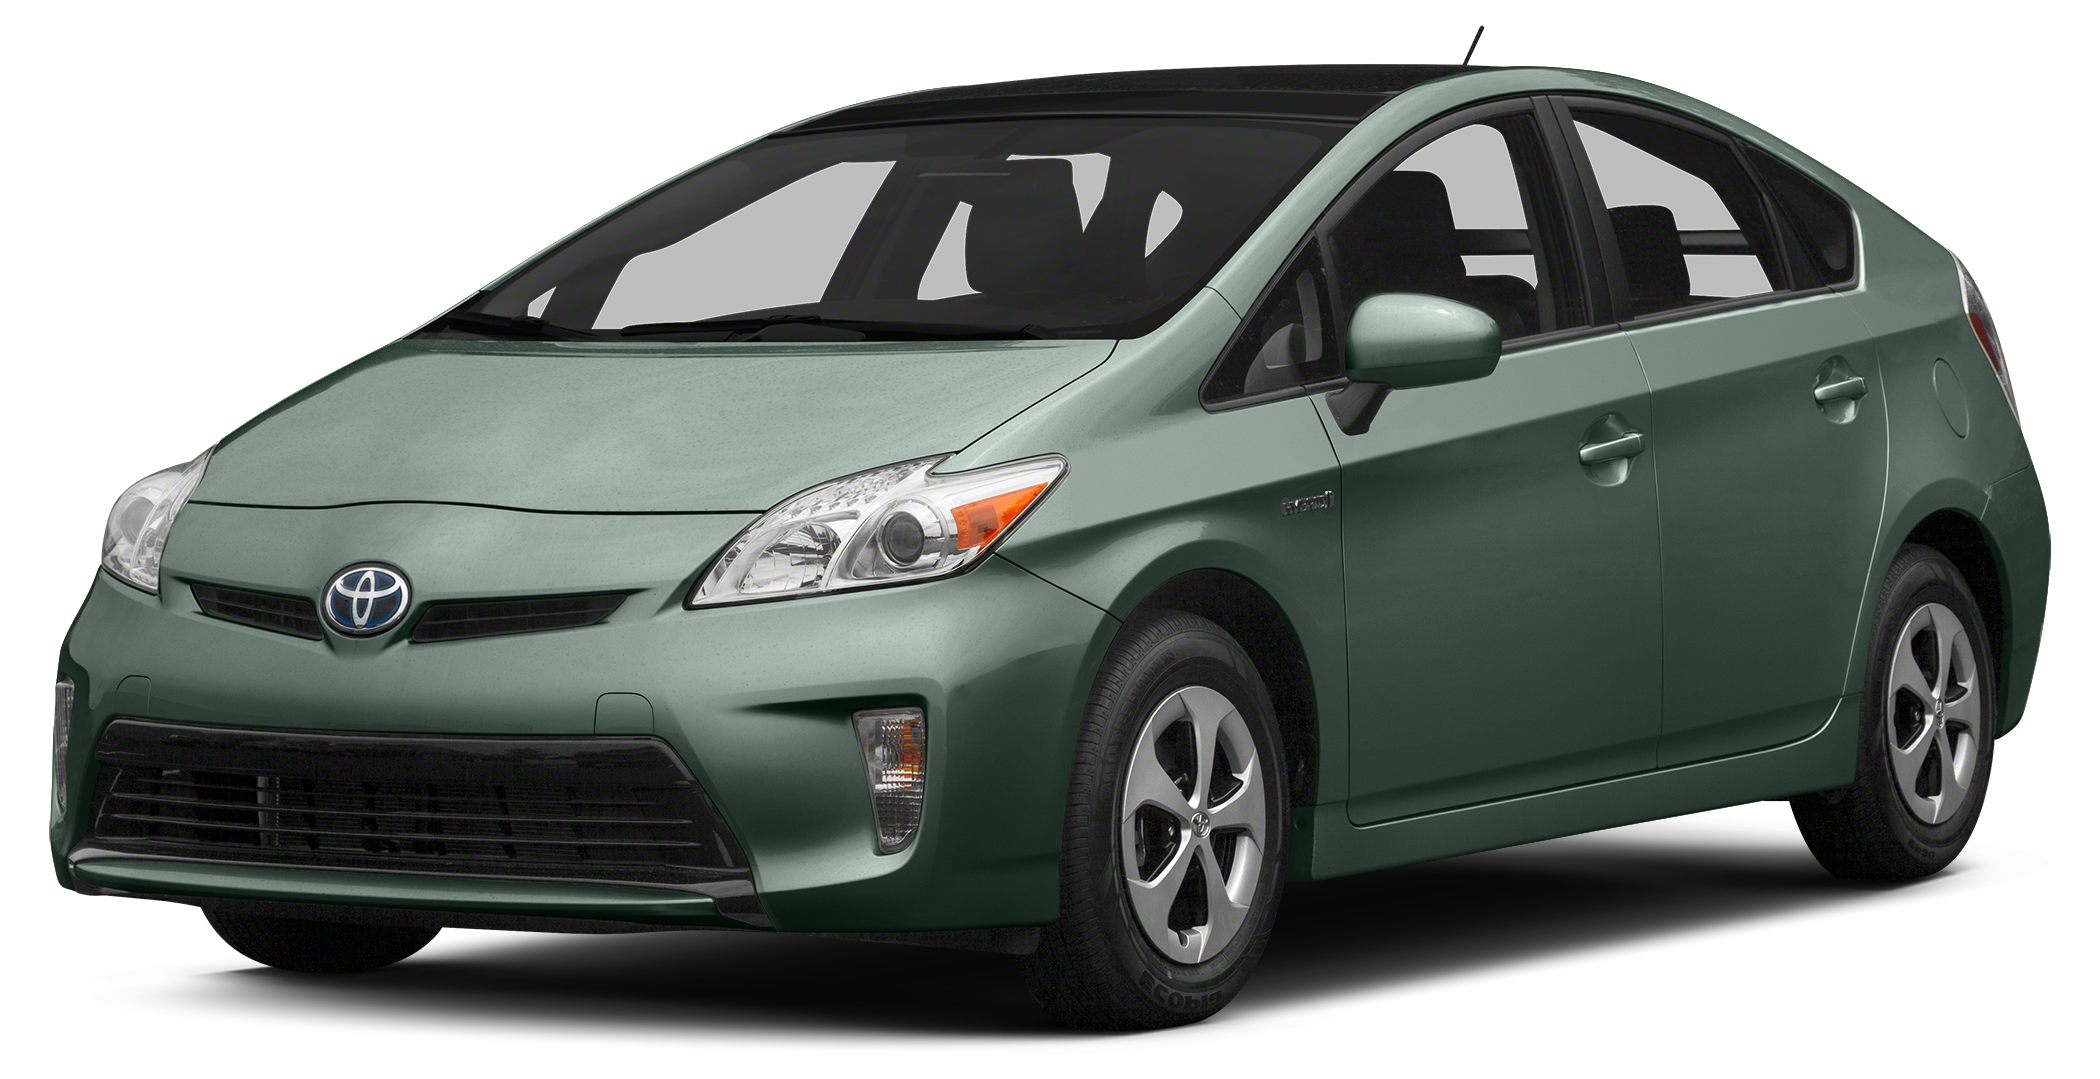 2013 Toyota Prius Four ONLY 38636 Miles EPA 48 MPG Hwy51 MPG City Sunroof Heated Seats NAV